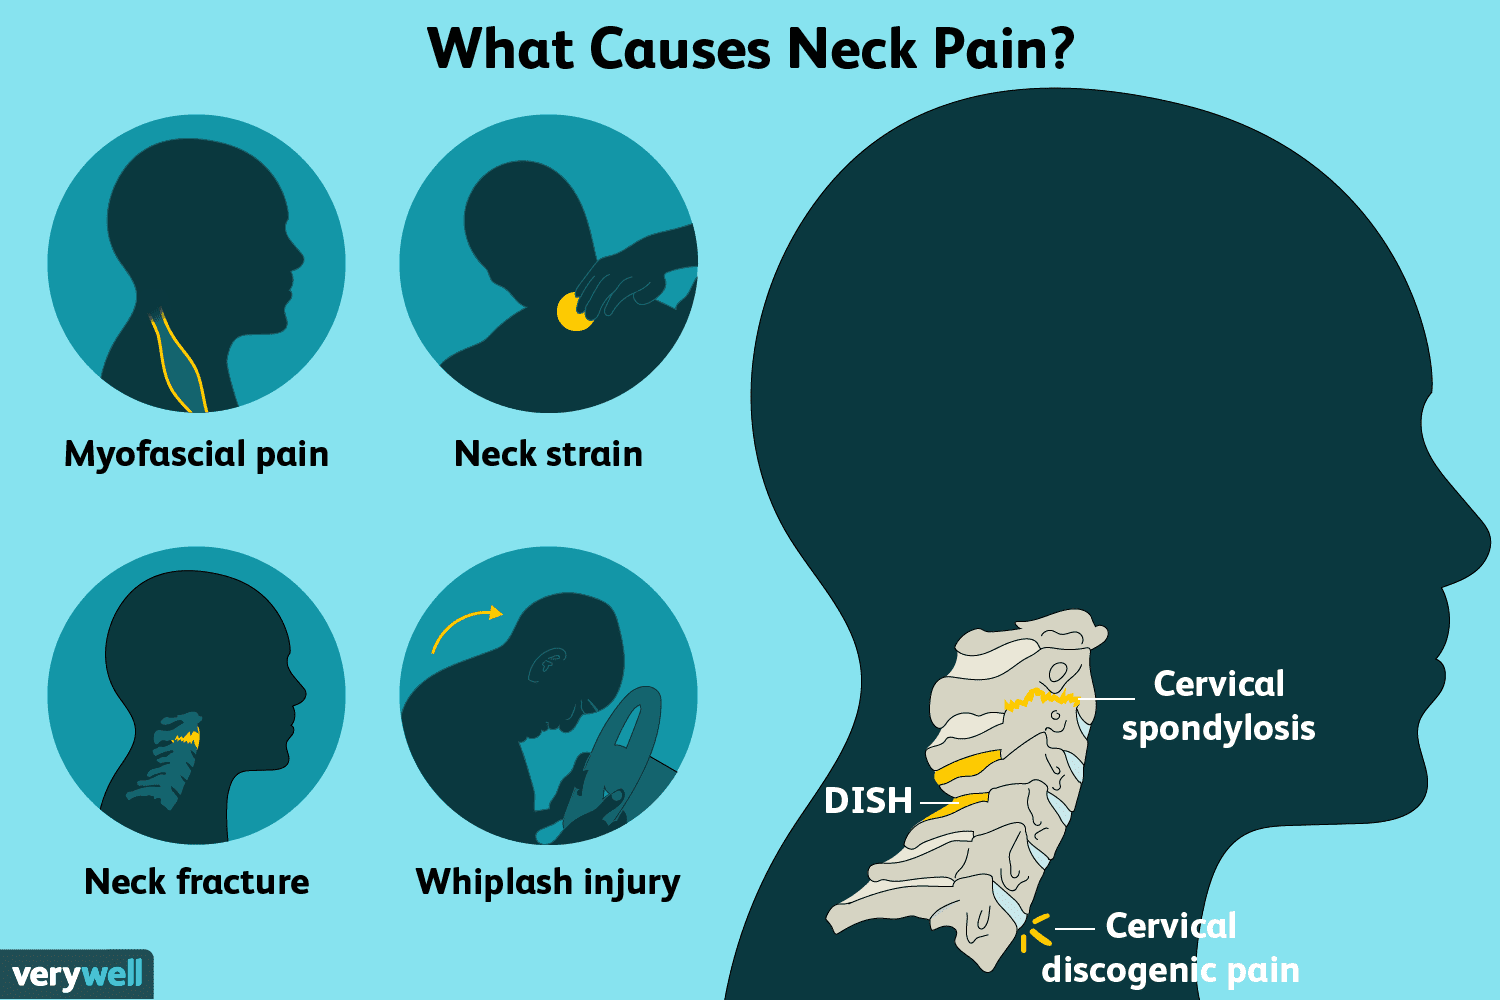 Neck Pain: Causes, Treatment, and When to See a Doctor